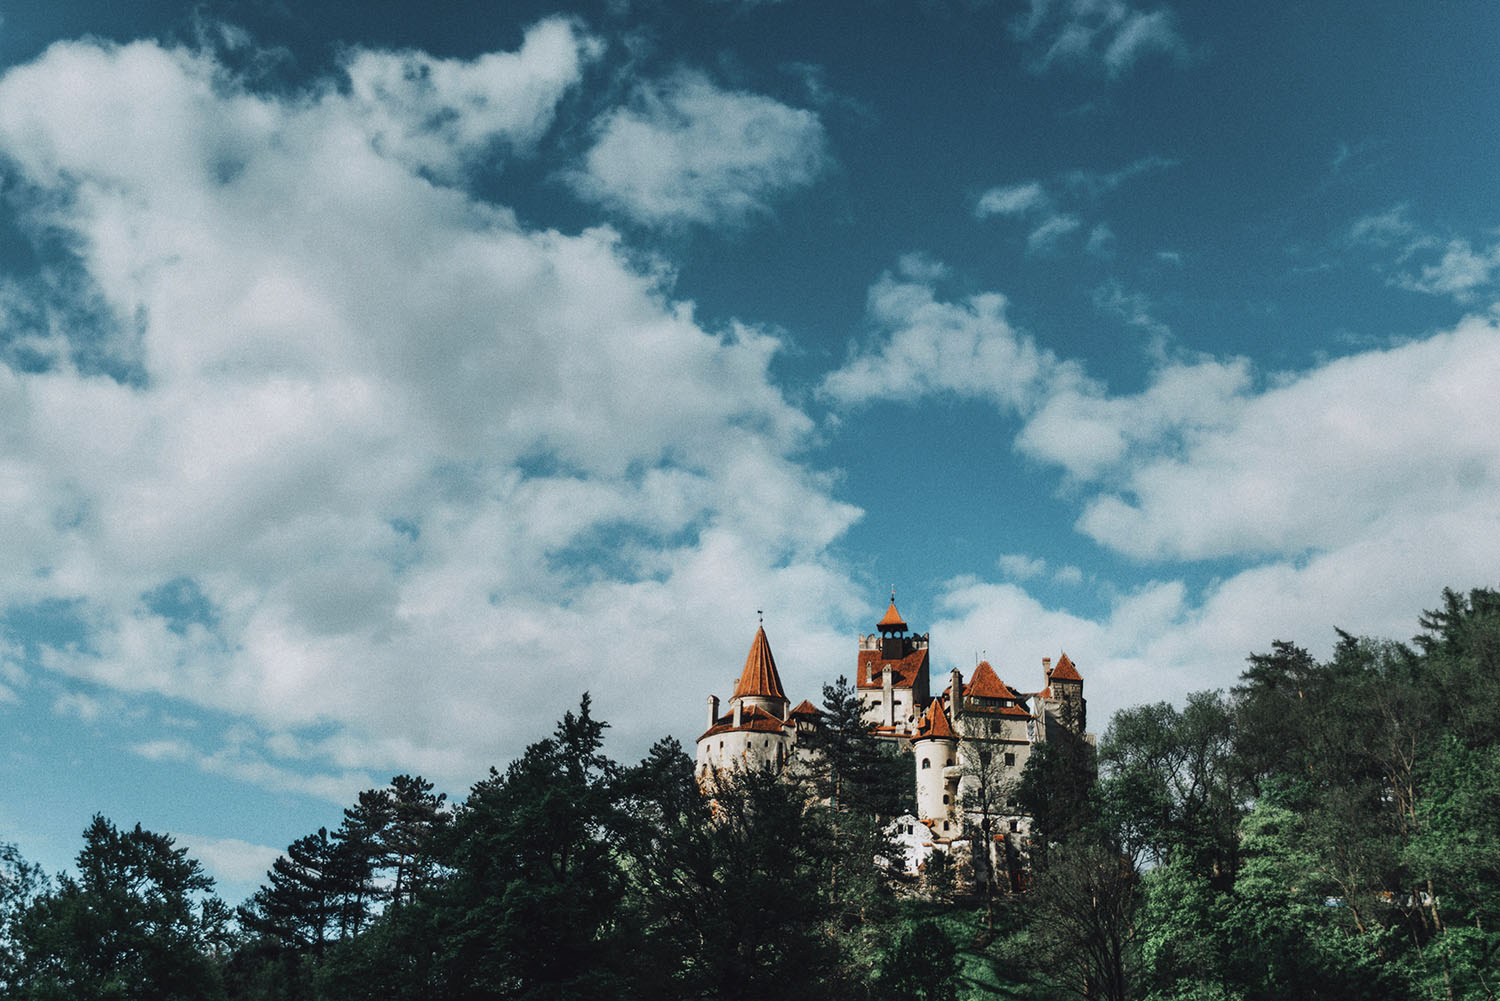 Authentic Romania Tours: Dracula's Castle, Castle Bran, in Transylvania